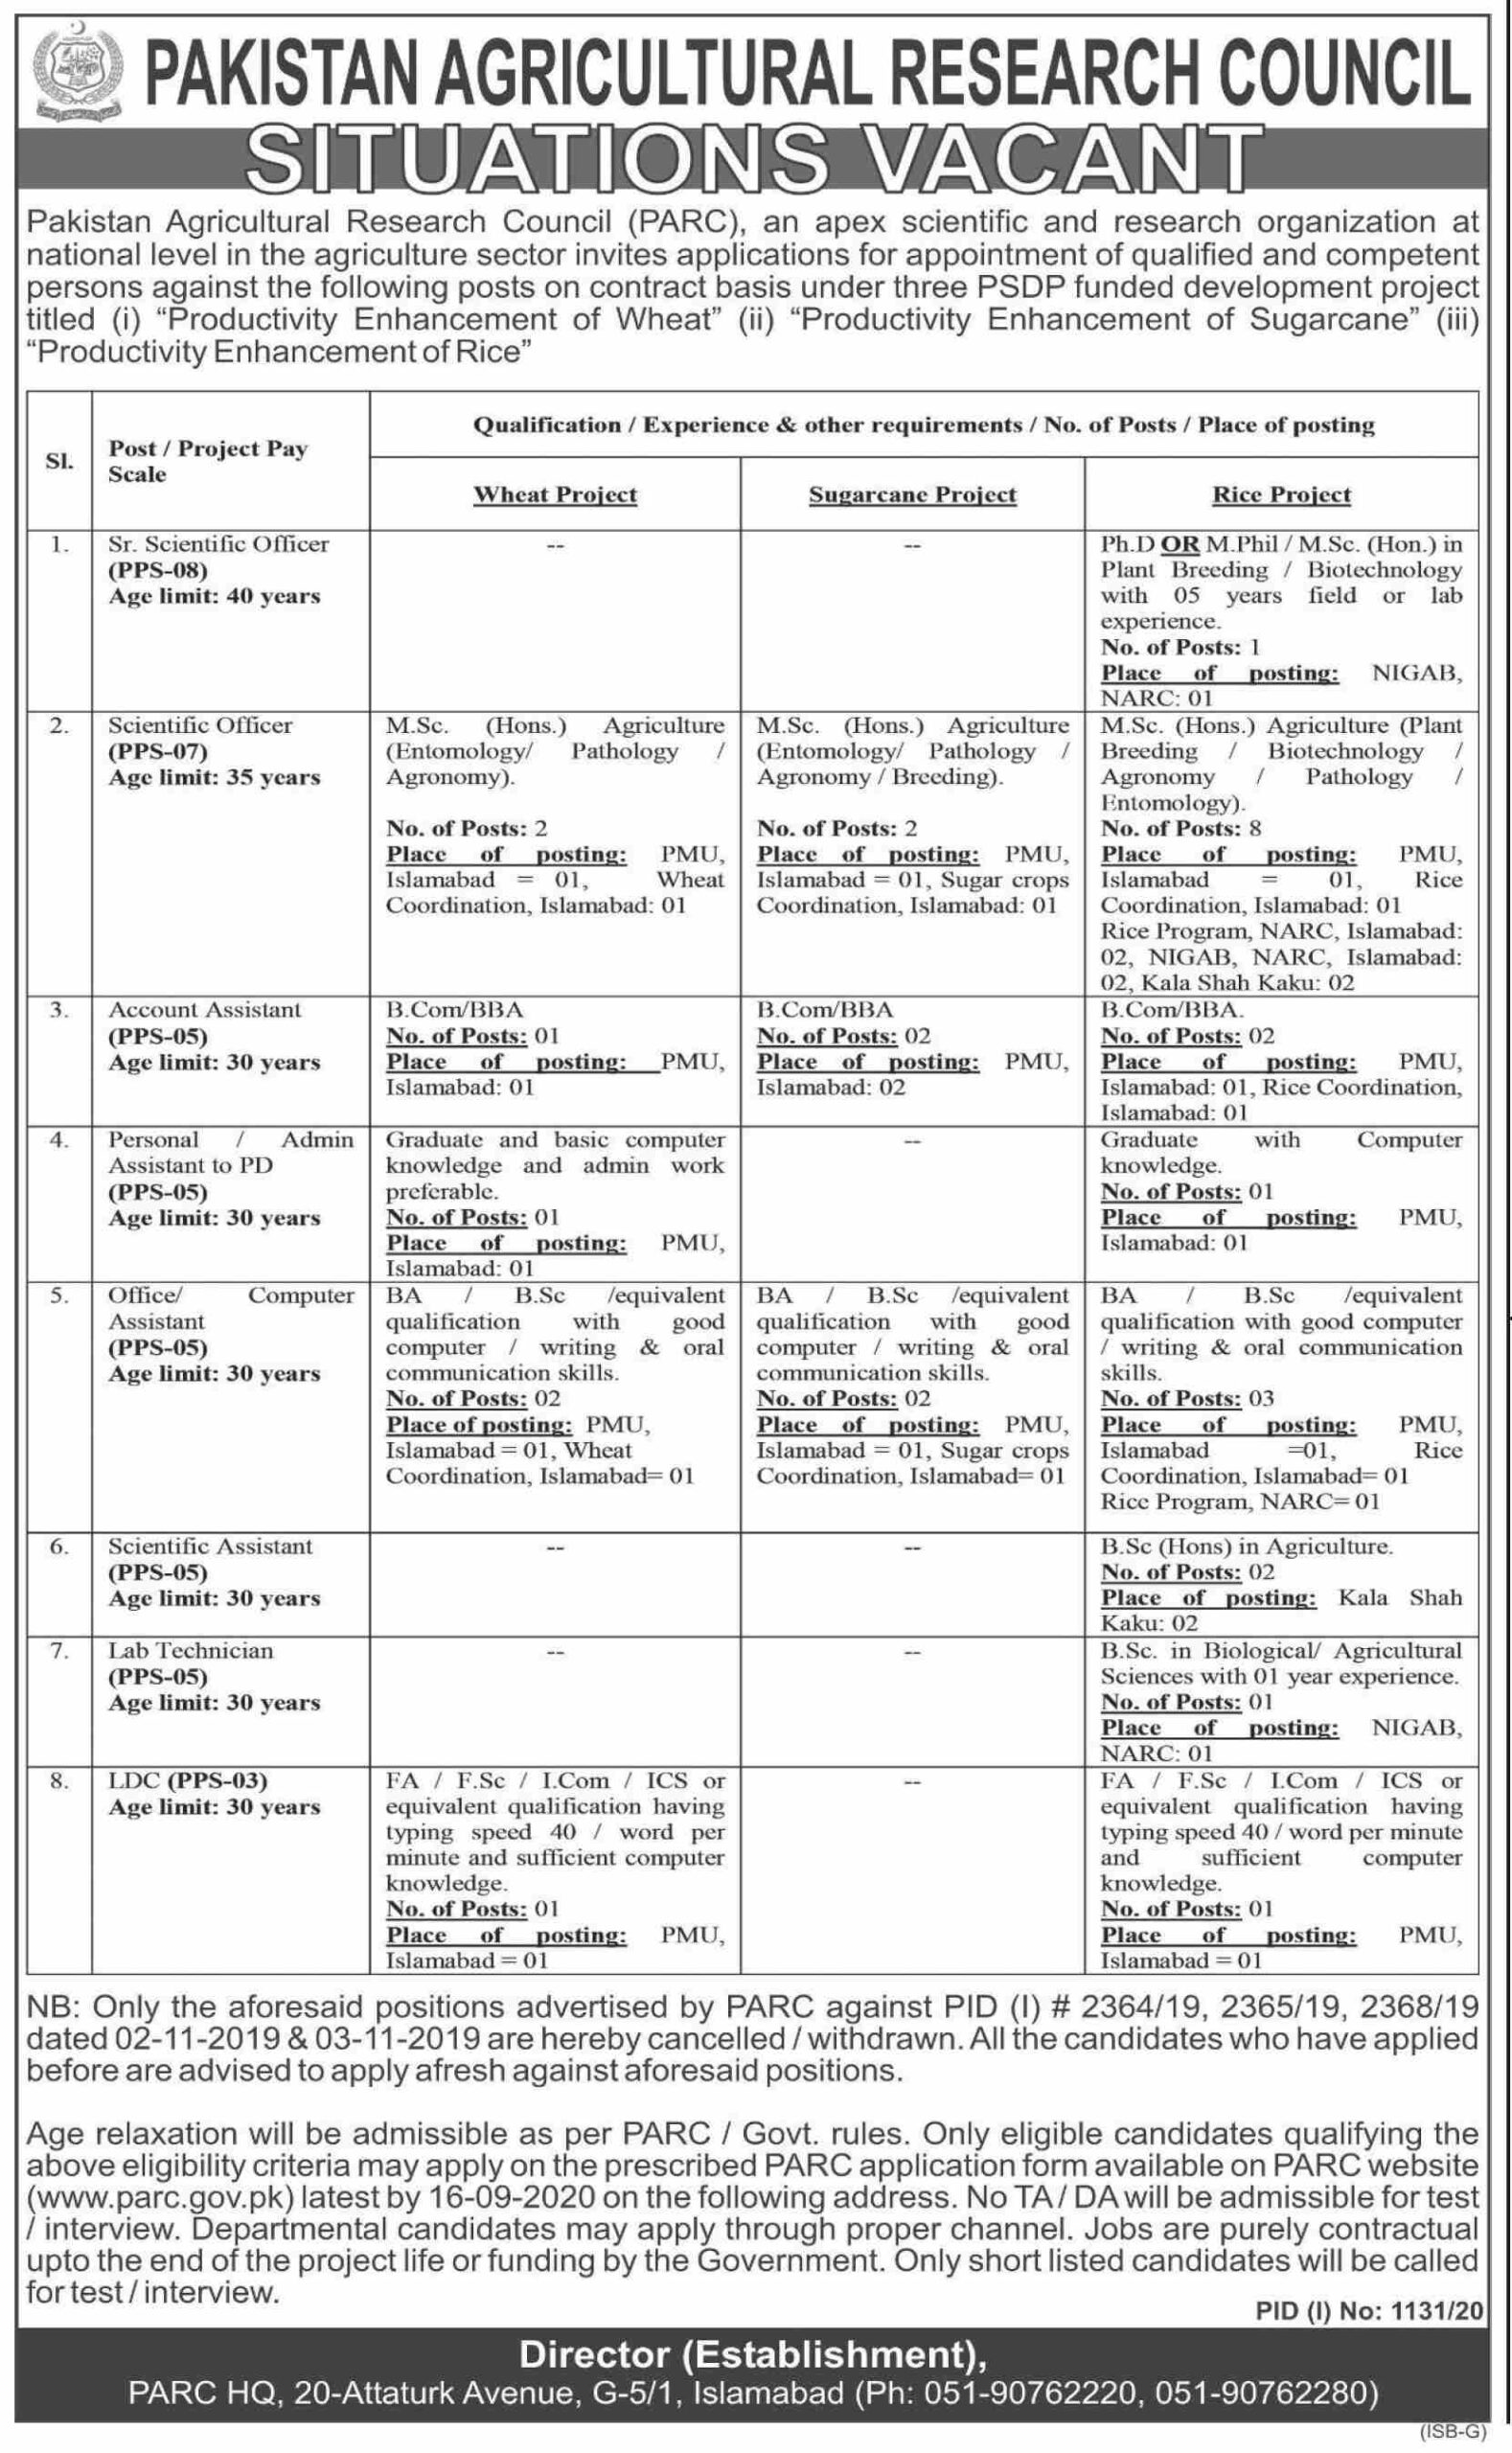 Pakistan Agricultural Research Council PARC Jobs September 2020